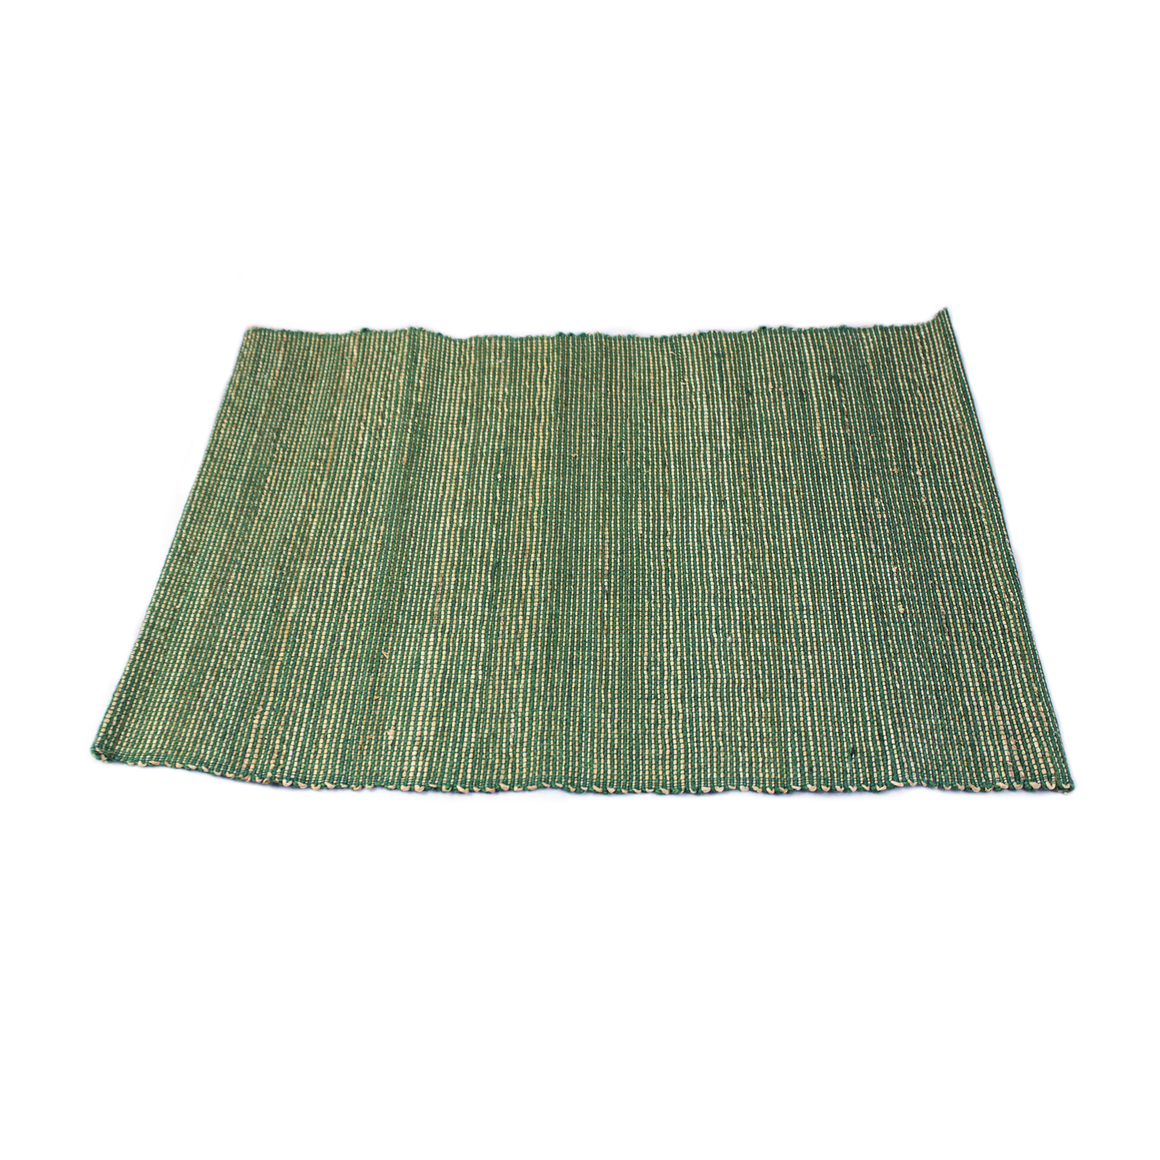 Green Solid Jute Placemat